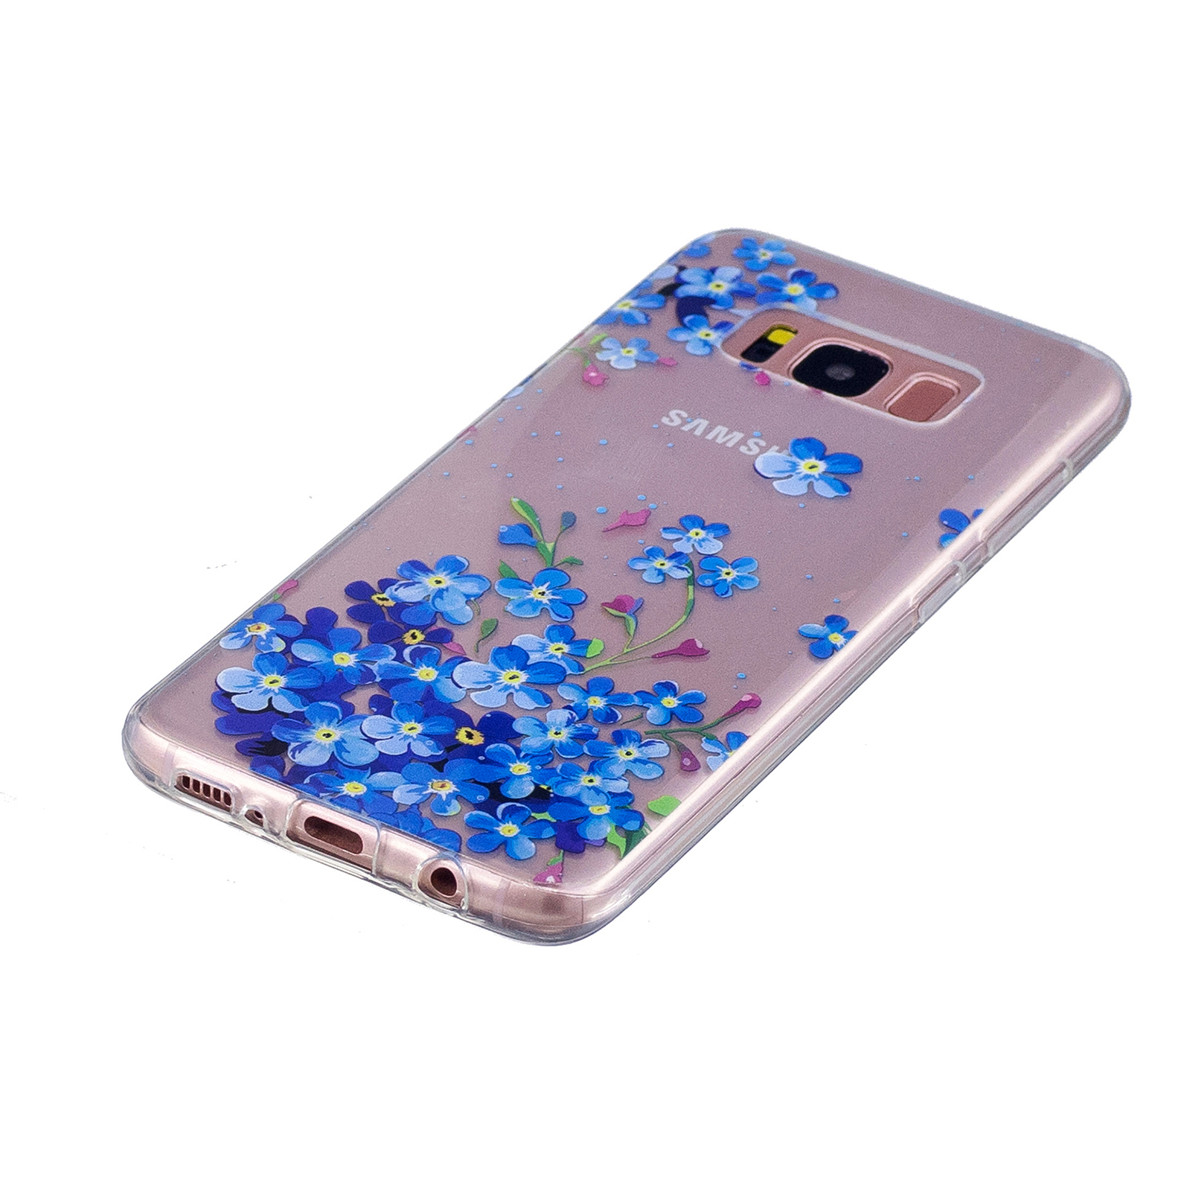 For Samsung Galaxy Note 8 S8 Plus J3 J7 Clear Soft Tpu Gel Case 2016 J320 Gratis Tempered Glass Ultrathin